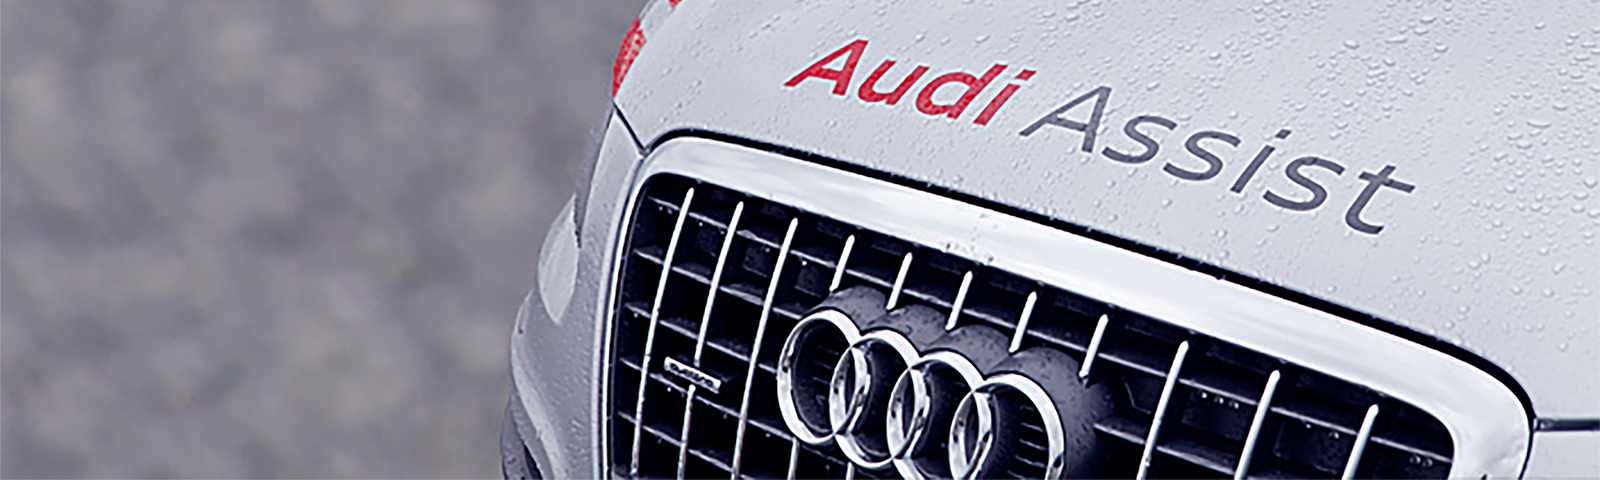 Audi CPO limited warranty coverage